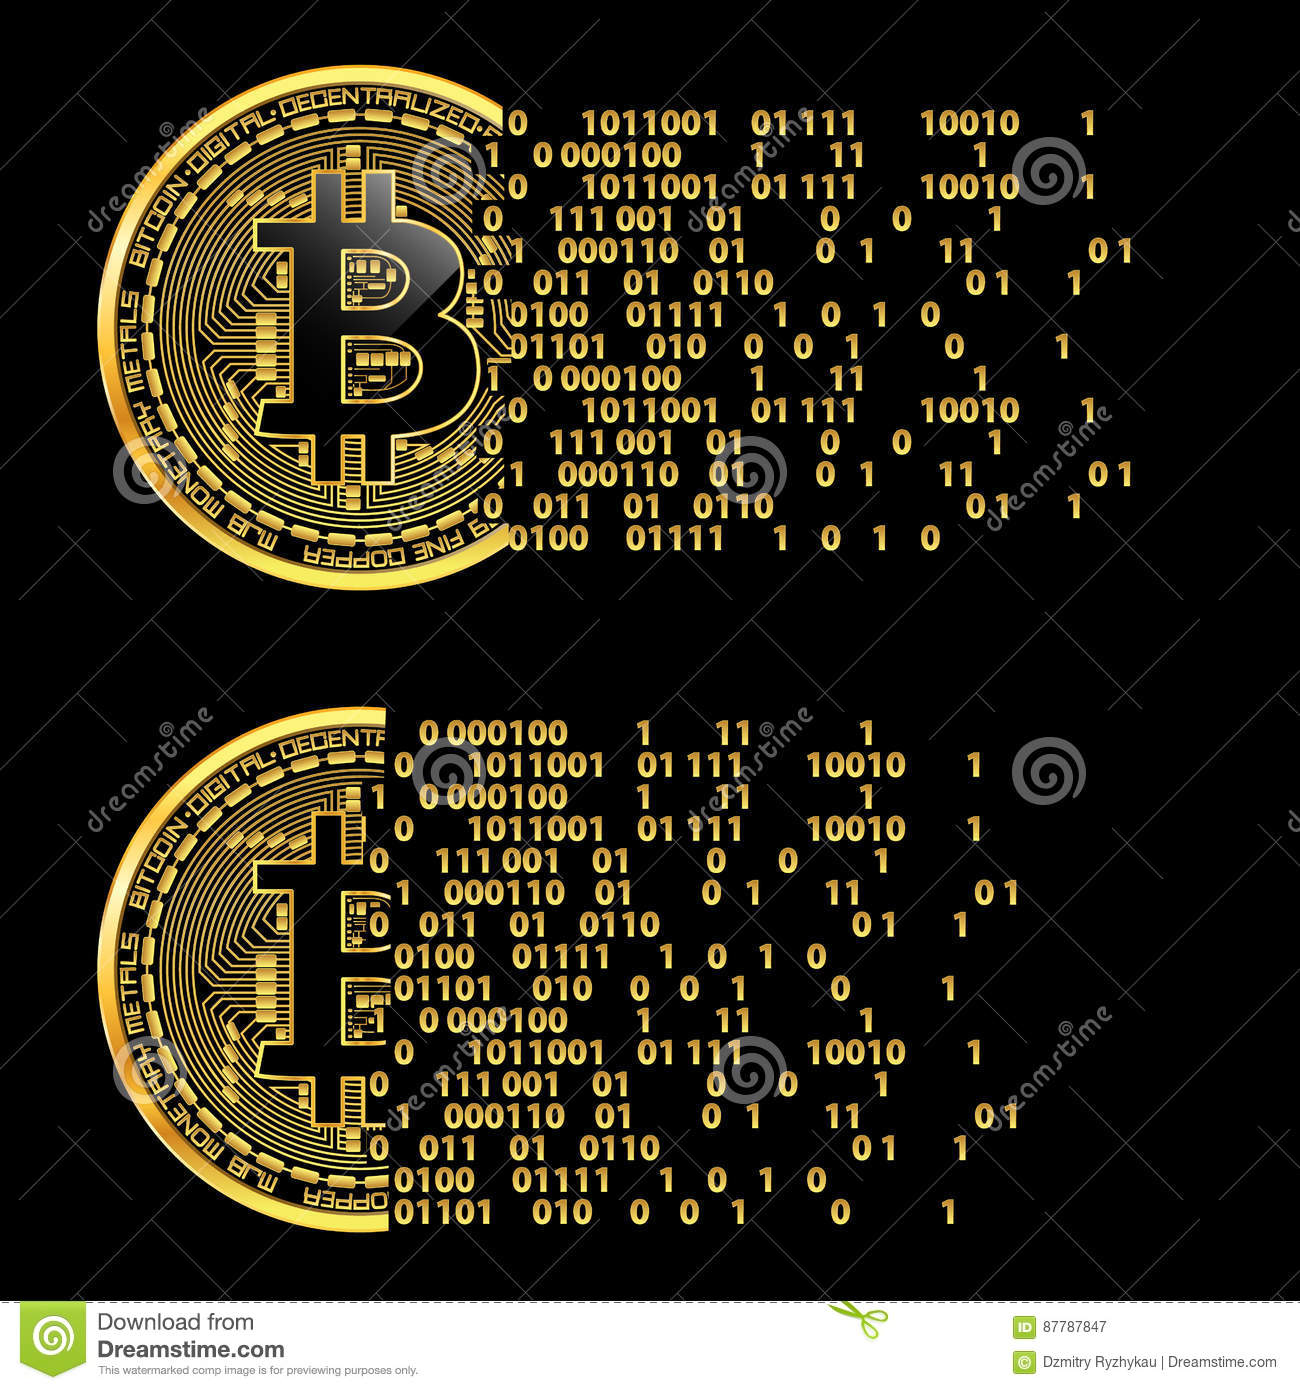 Royalty free cryptocurrency images